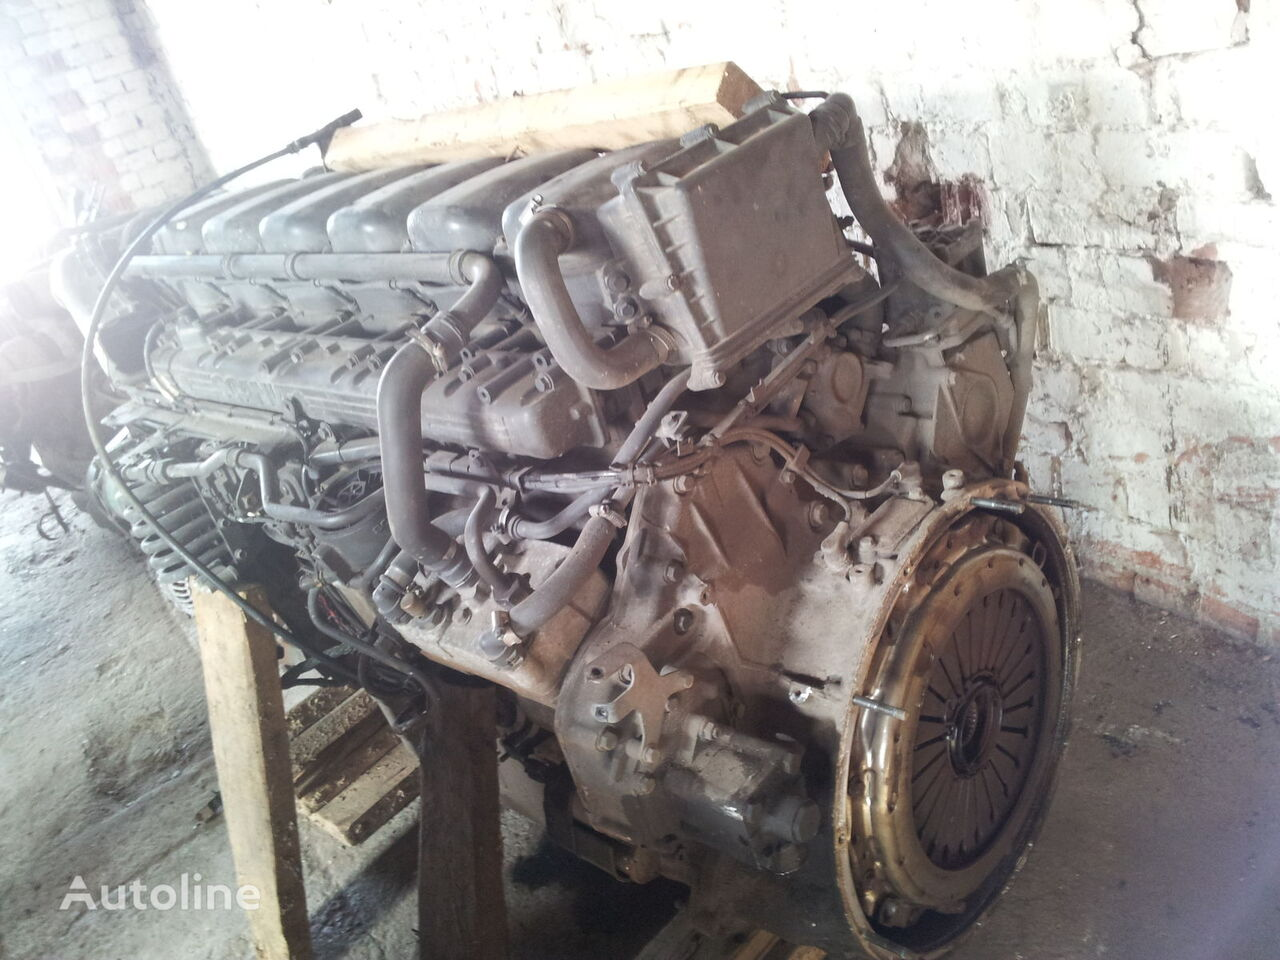 SCANIA R series HPI engine, EUO3, EUO4, DT1217, 480PS, DT1206, 470PS, D engine for SCANIA R tractor unit